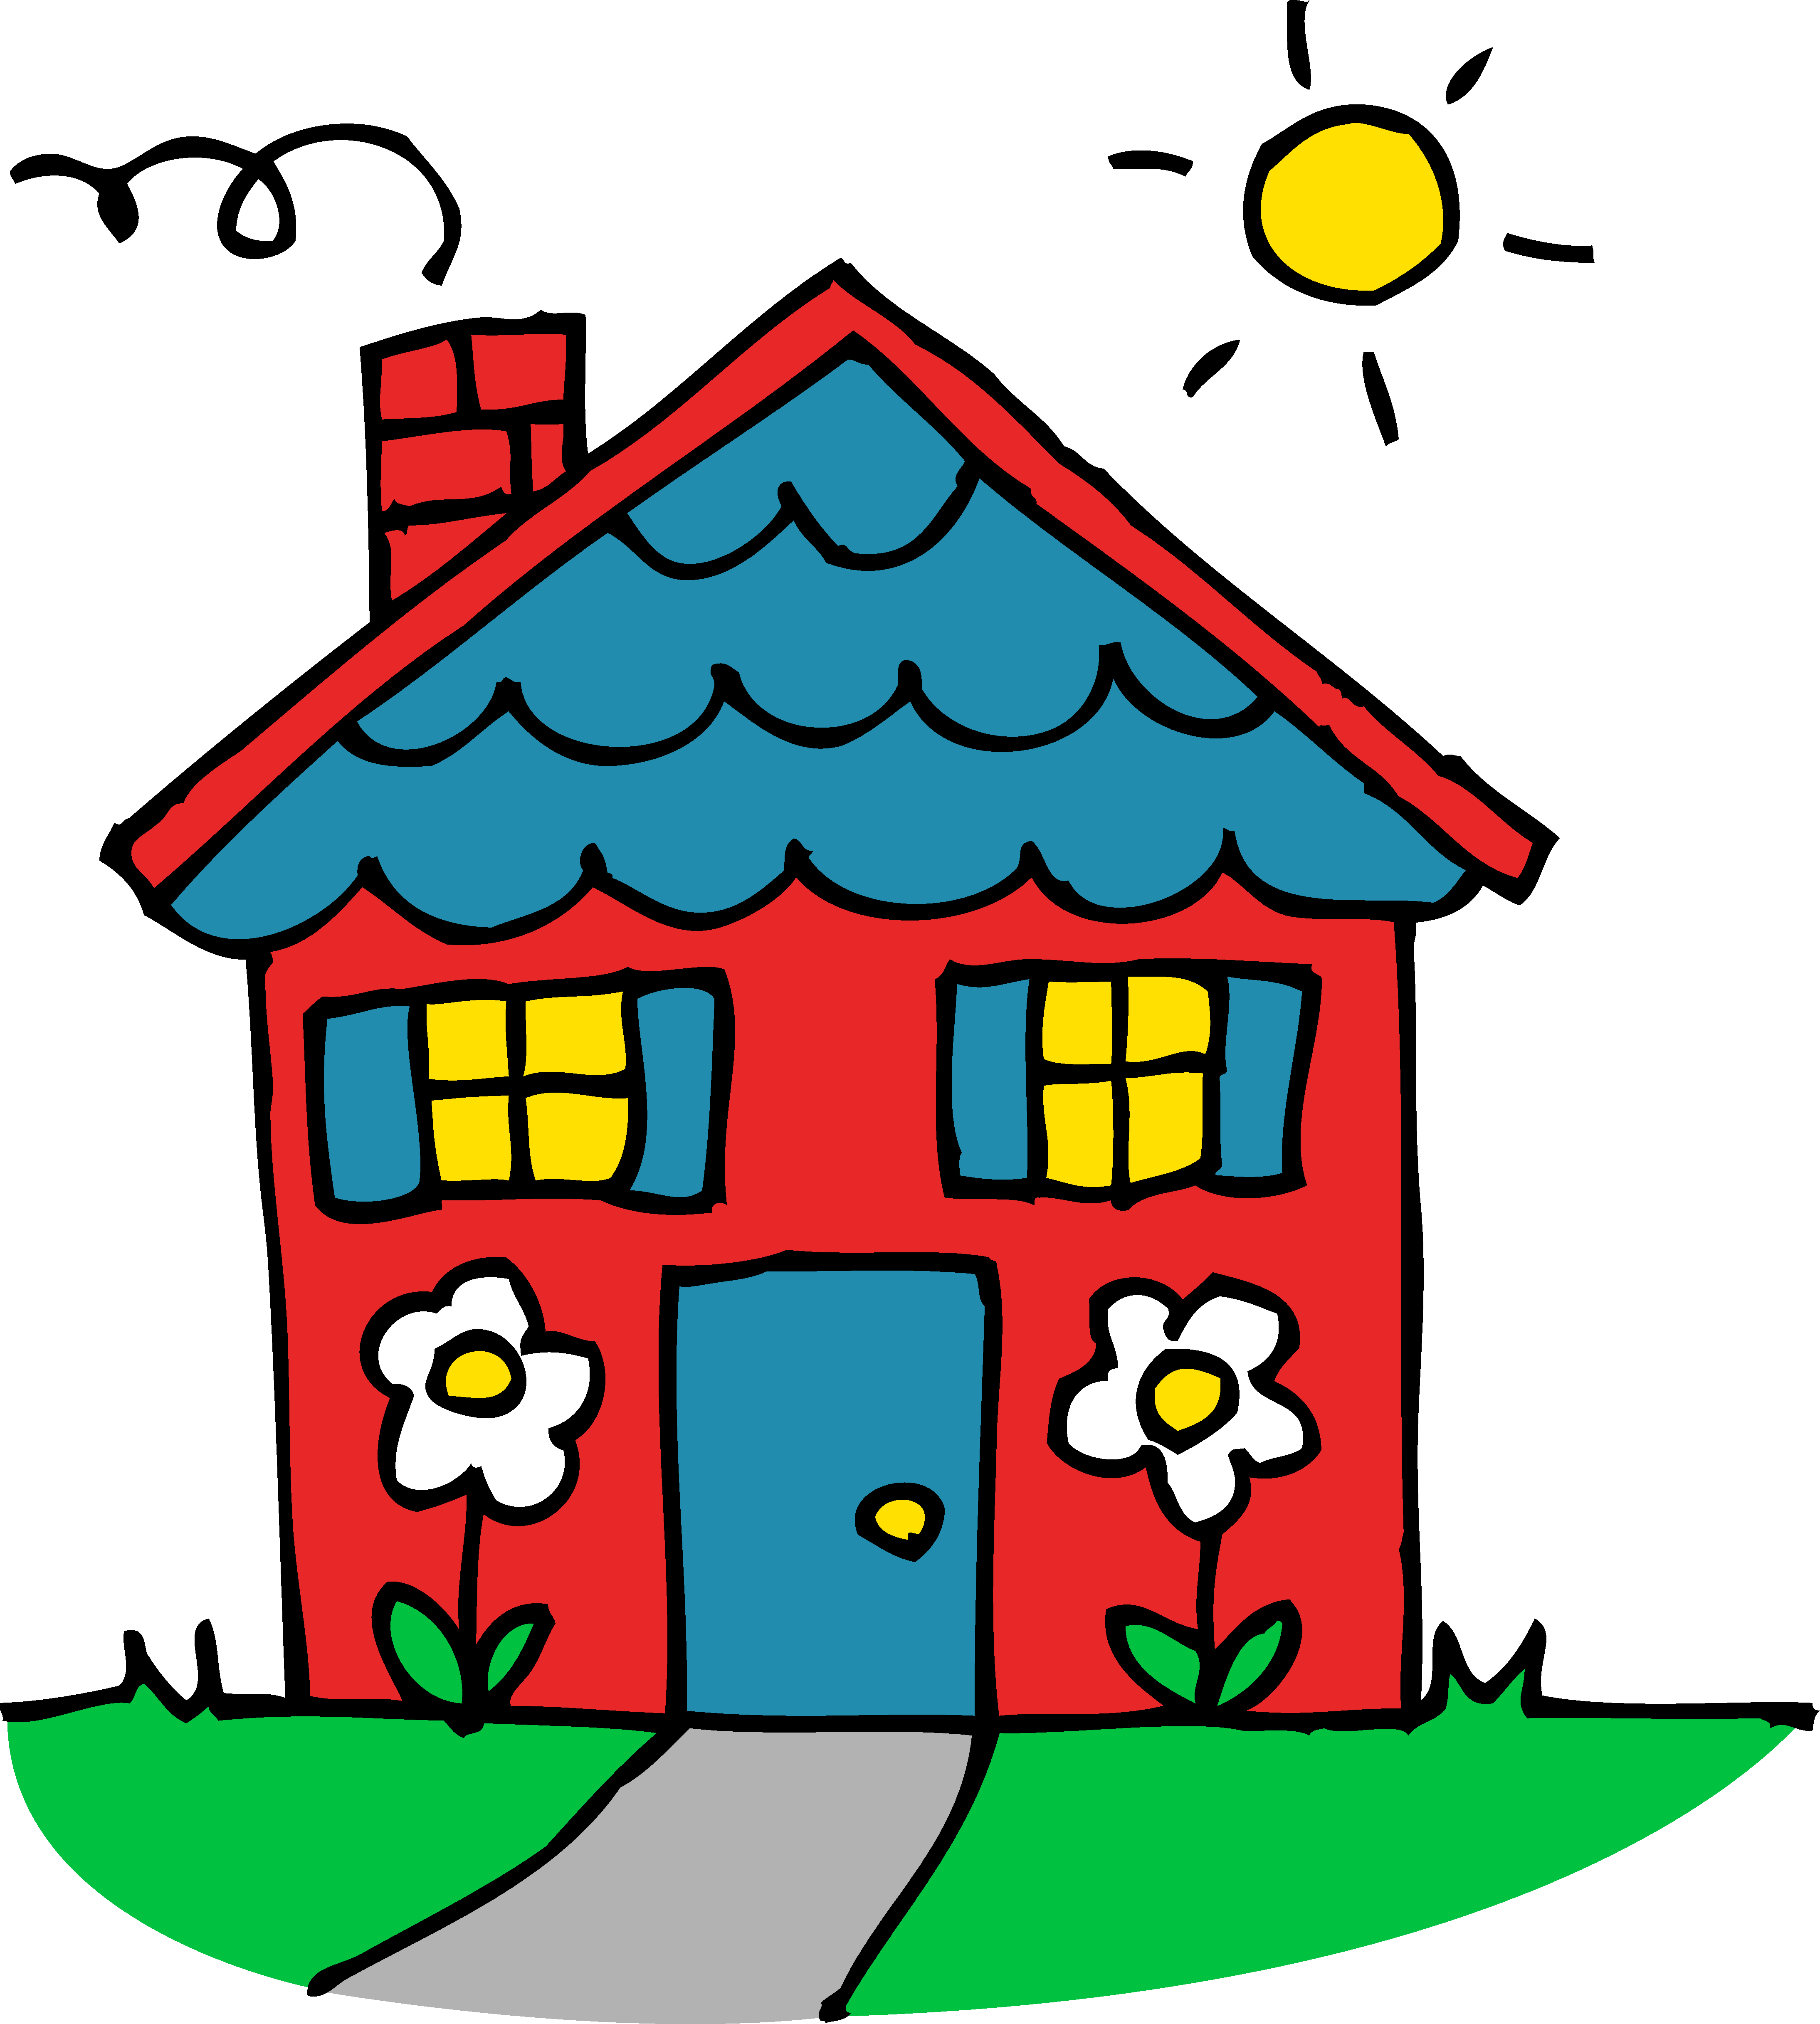 House clipart #5, Download drawings